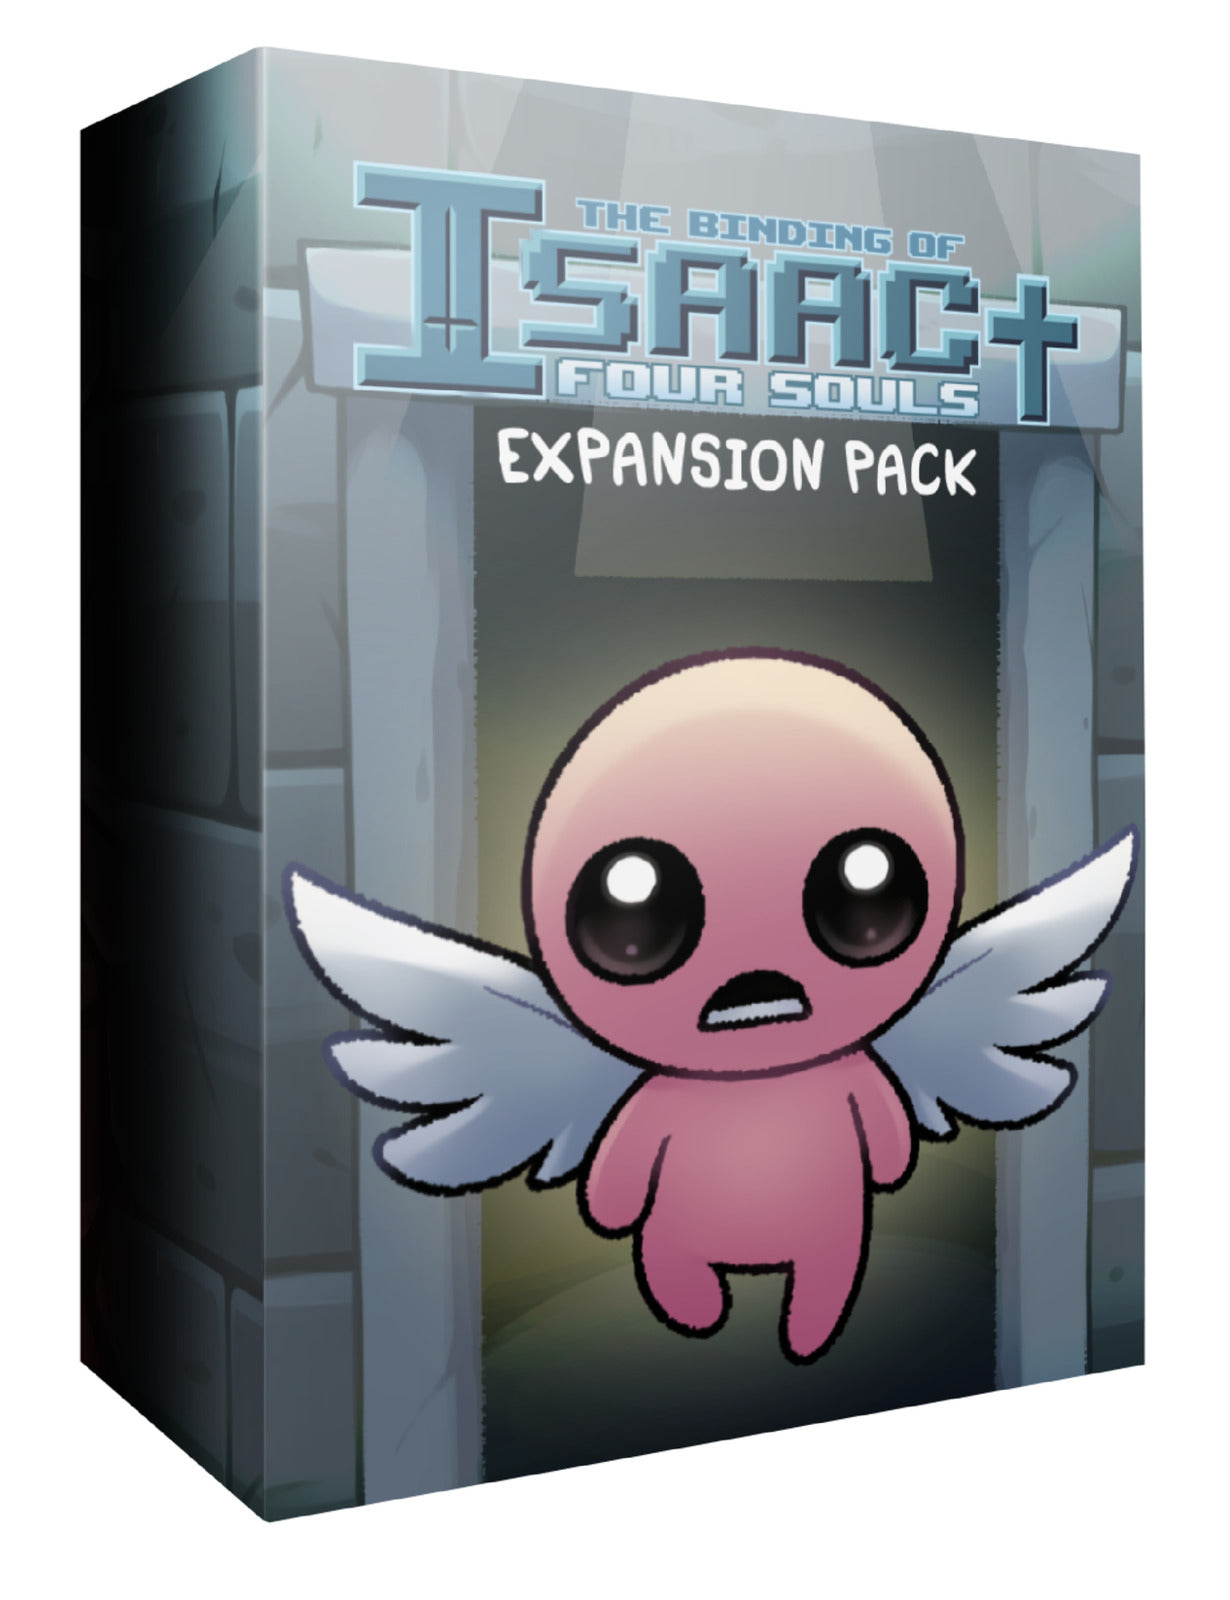 The Binding of Issac: Four Souls - Expansion Pack